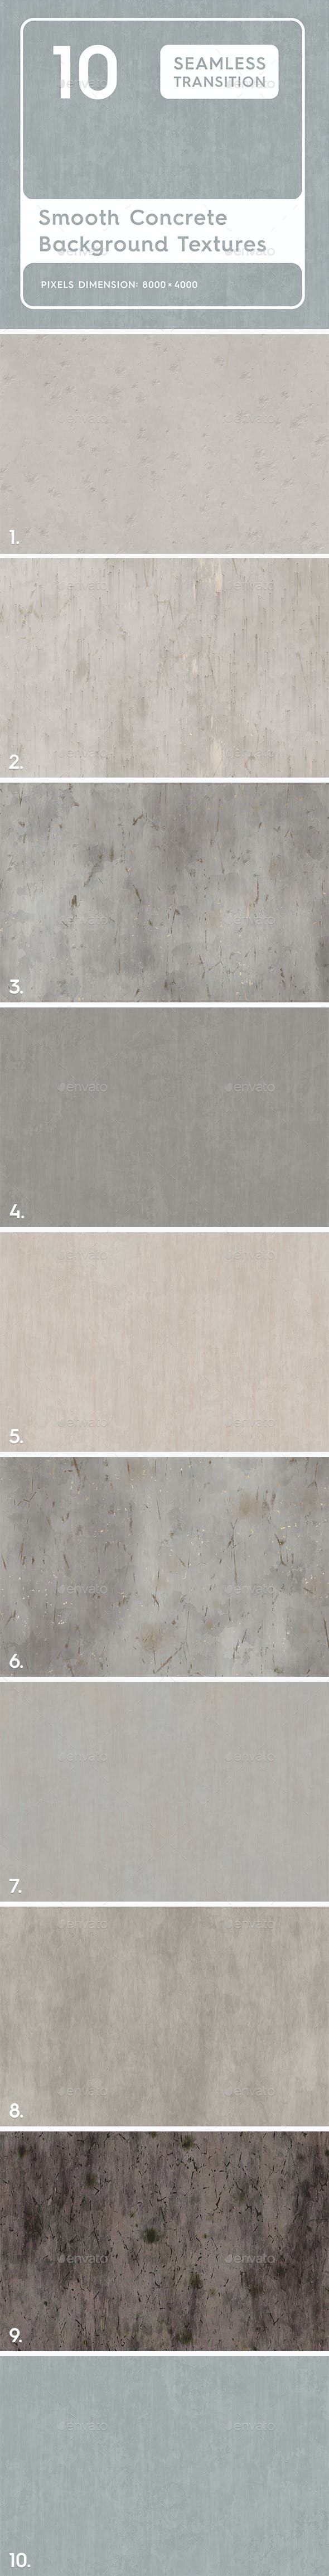 20 Smooth Concrete Background Textures - 3DOcean Item for Sale